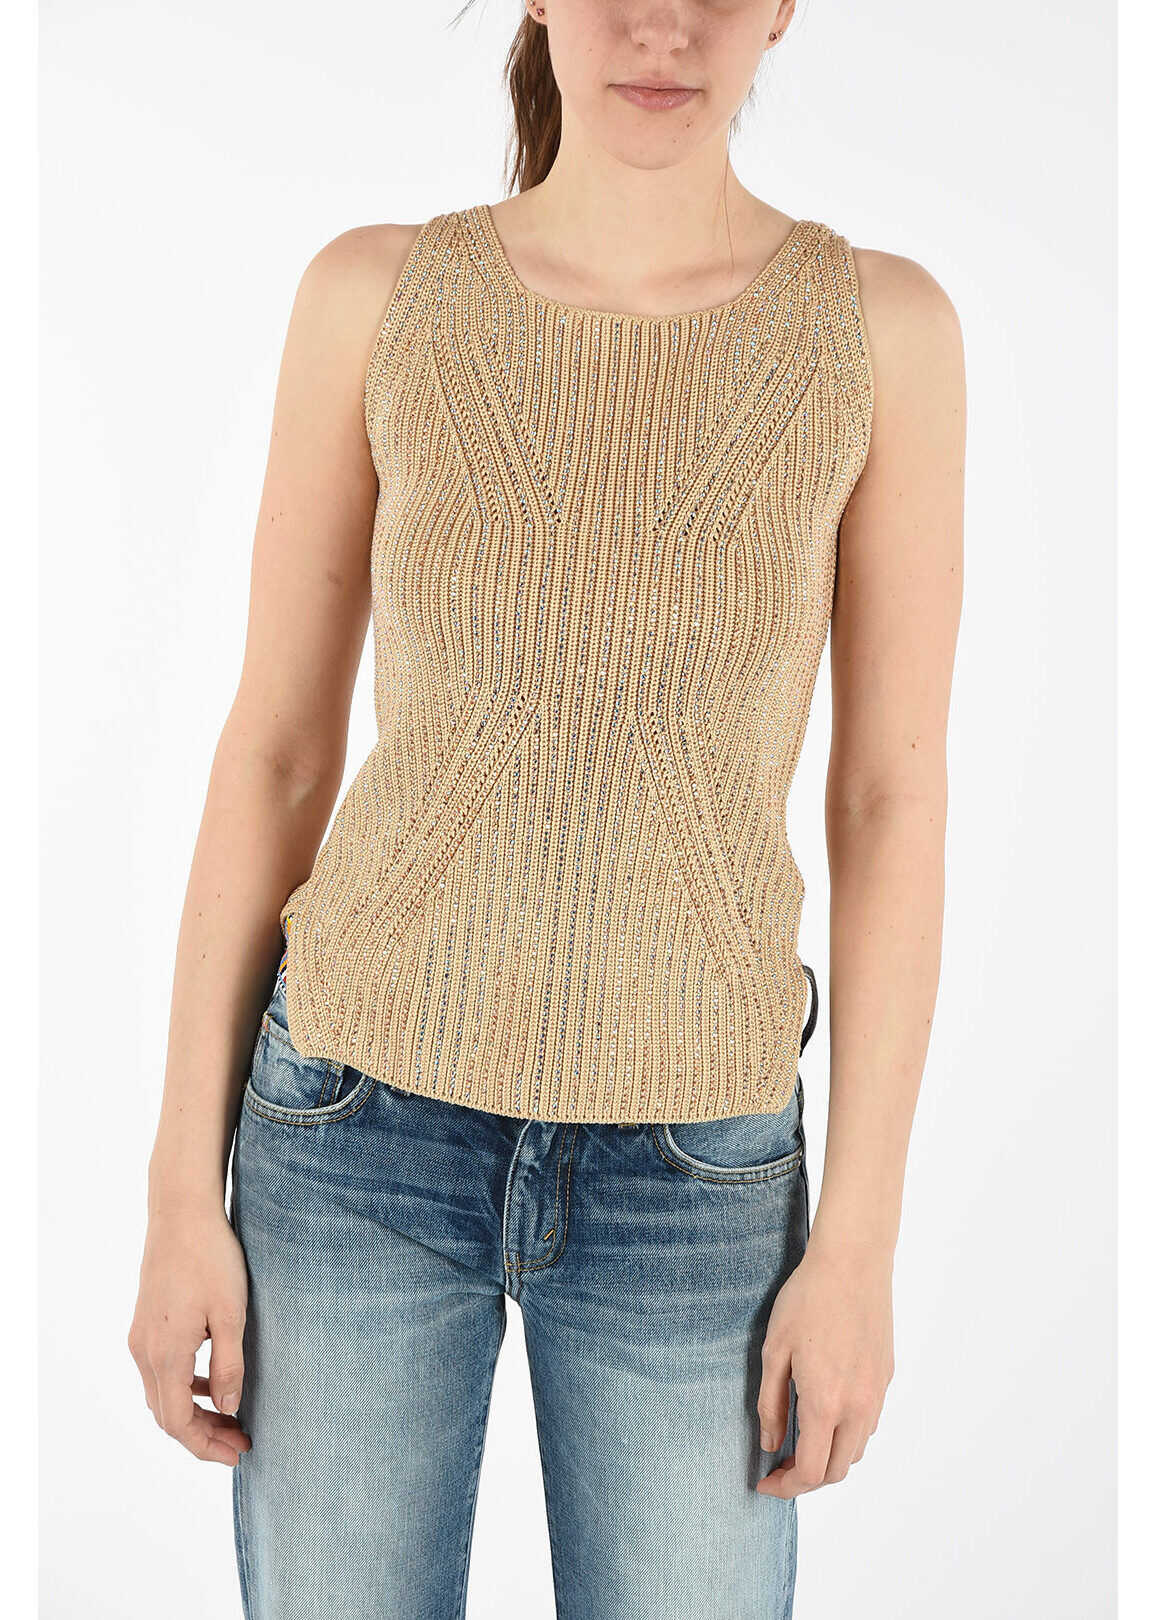 Ermanno Scervino Sleeveless Sweater with Jewel Applications BEIGE